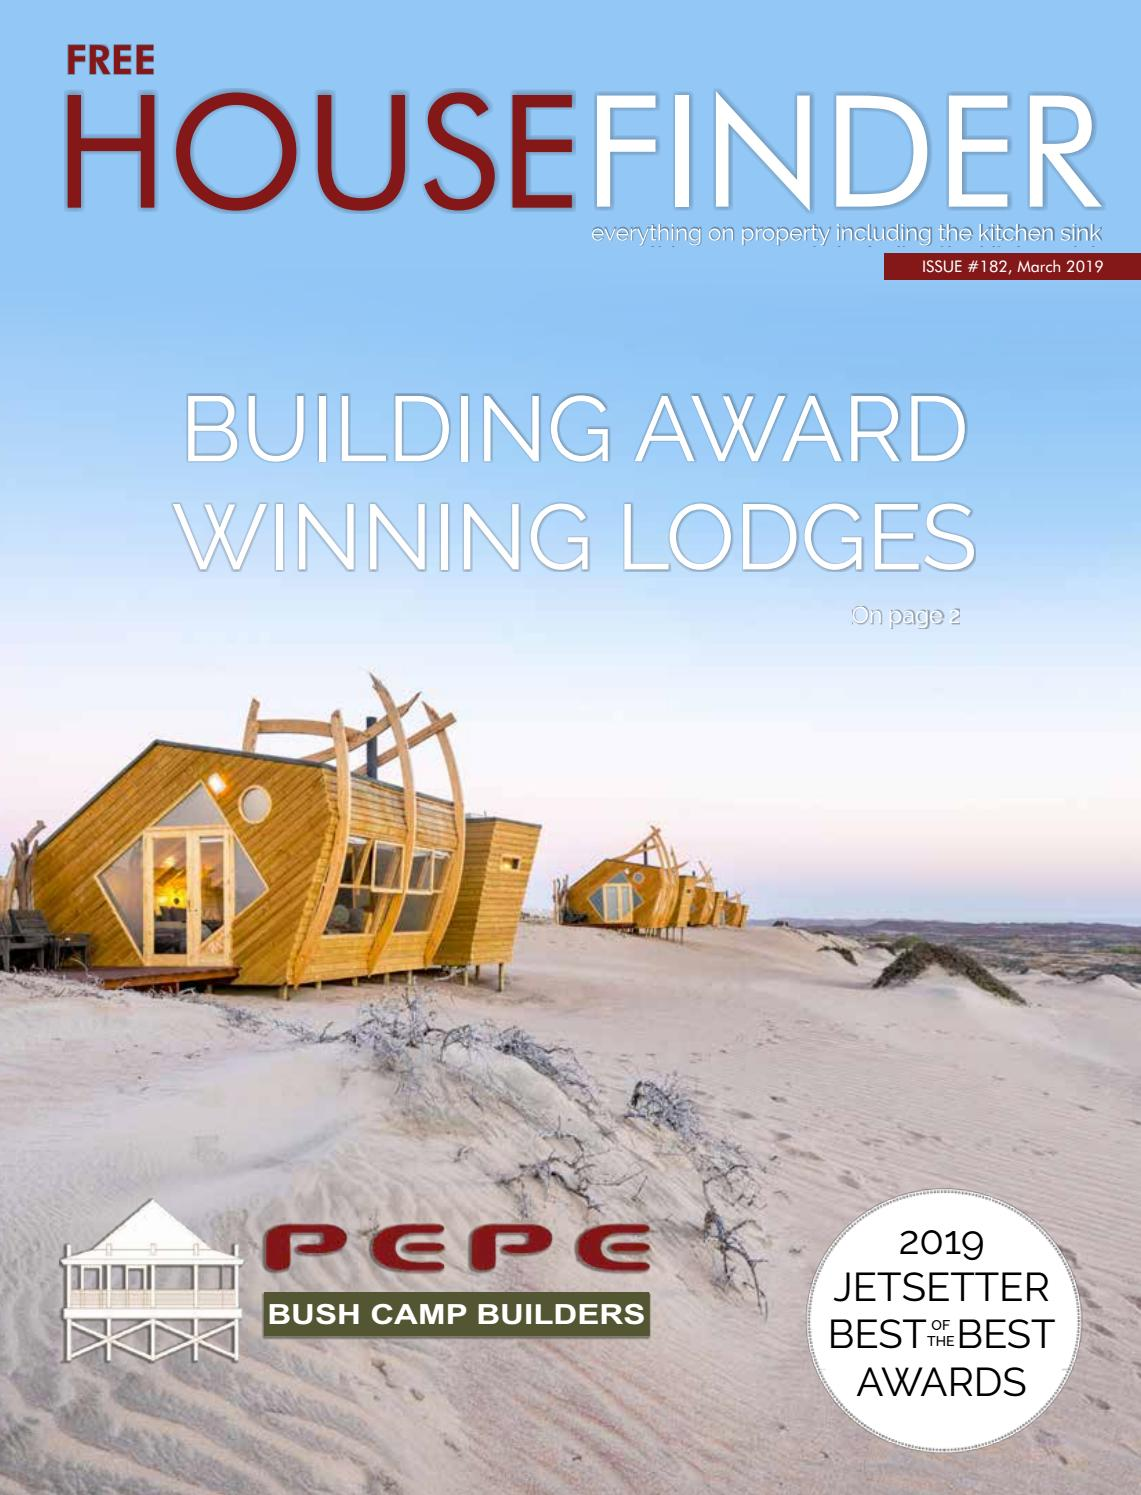 Namibia Immobilien Edition 182 March 2019 Bumper By Housefinder Magazine Issuu